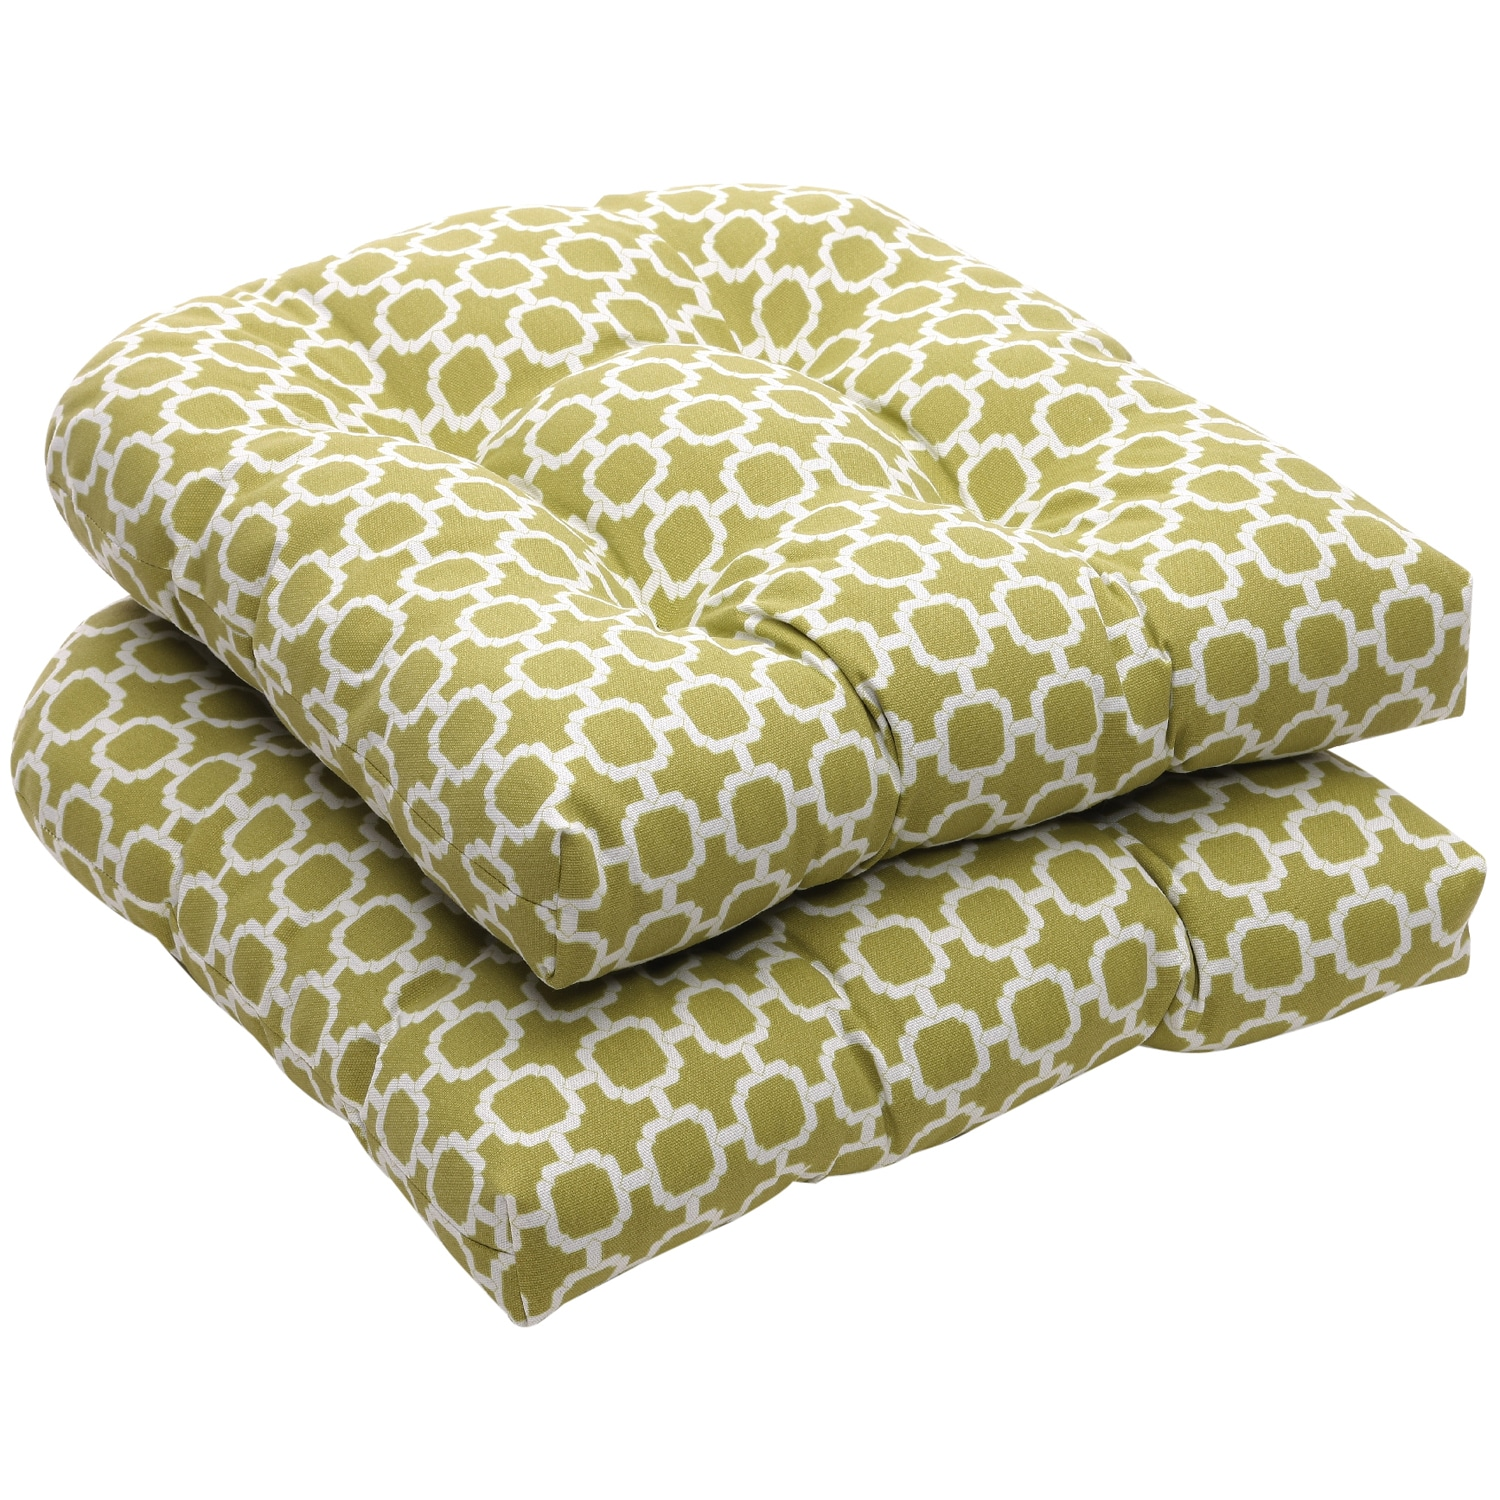 green chair cushions aluminium sling chairs shop outdoor and white geometric wicker seat